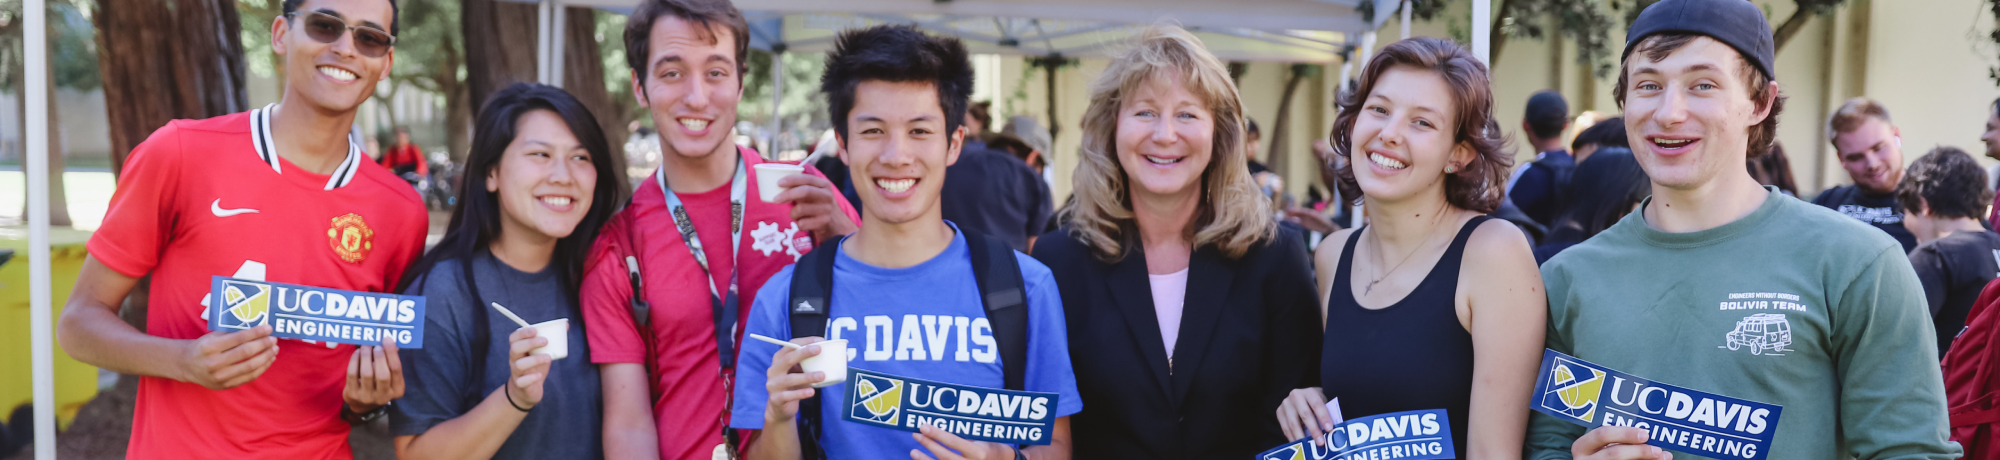 Students and Dean Curtis at Ice Cream Social 2019